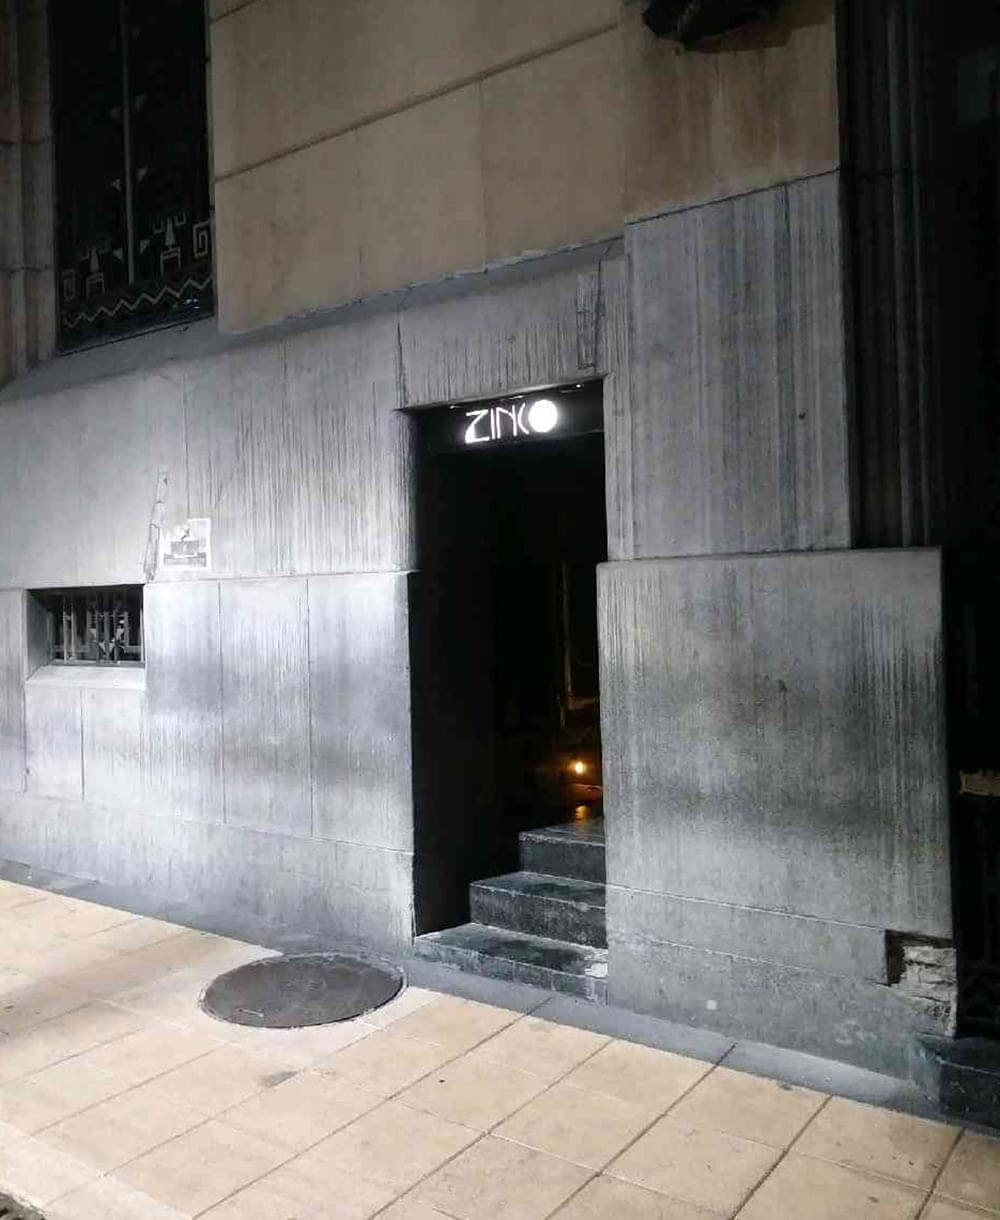 ZInco door entrance